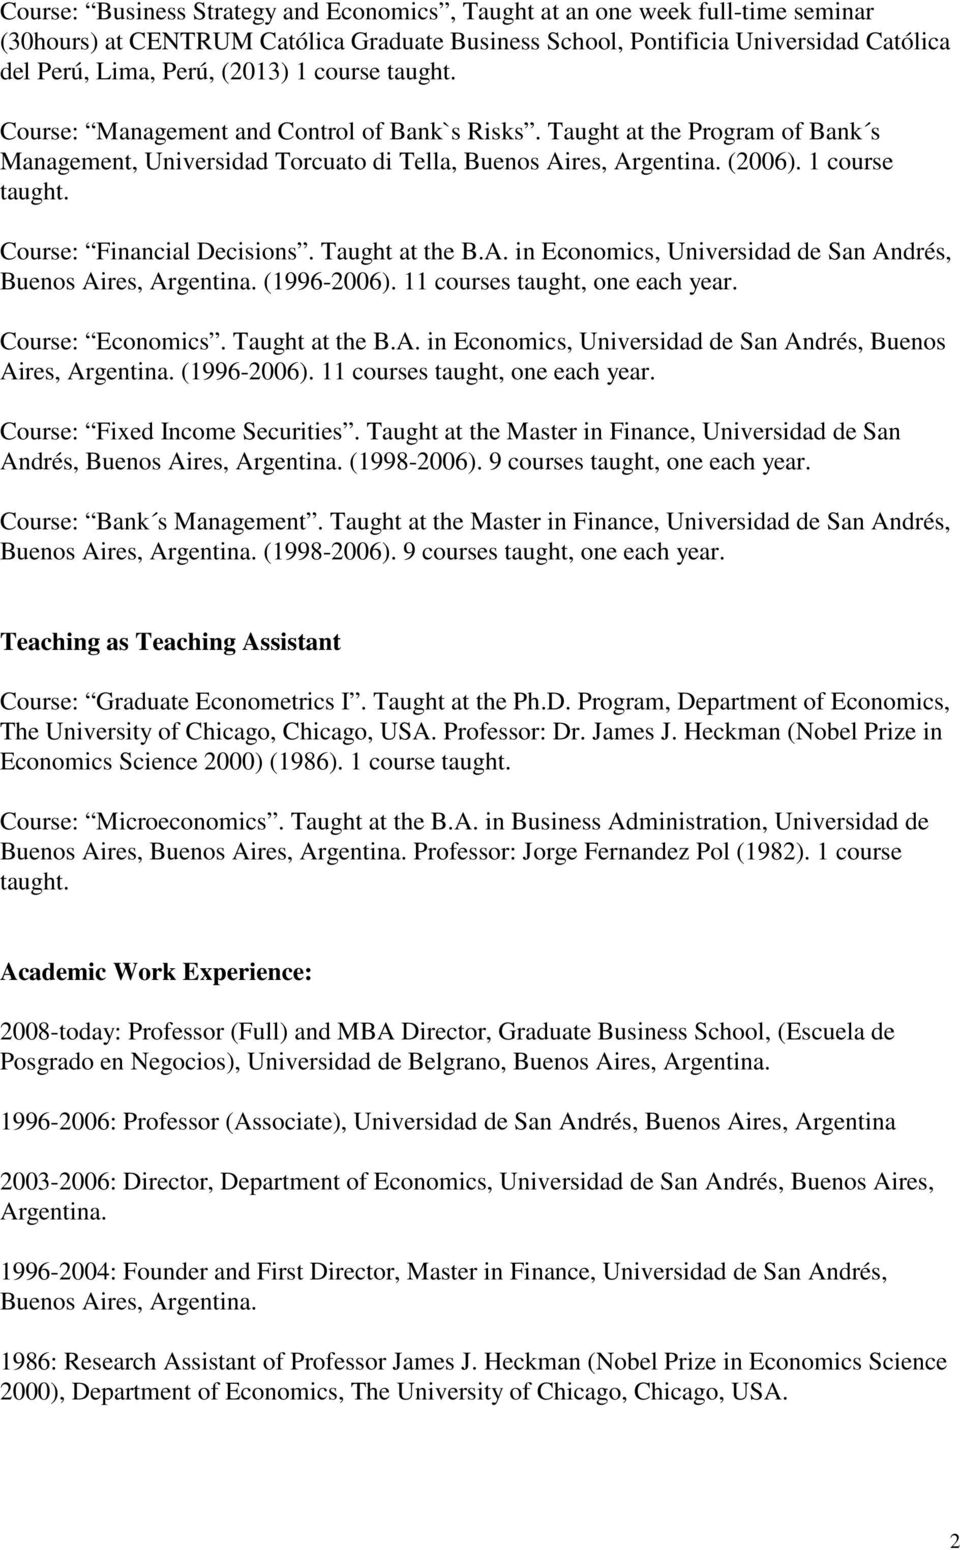 Course: Financial Decisions. Taught at the B.A. in Economics, Universidad de San Andrés, Buenos Aires, Argentina. (1996-2006). 11 courses taught, one each year. Course: Economics. Taught at the B.A. in Economics, Universidad de San Andrés, Buenos Aires, Argentina. (1996-2006). 11 courses taught, one each year. Course: Fixed Income Securities.